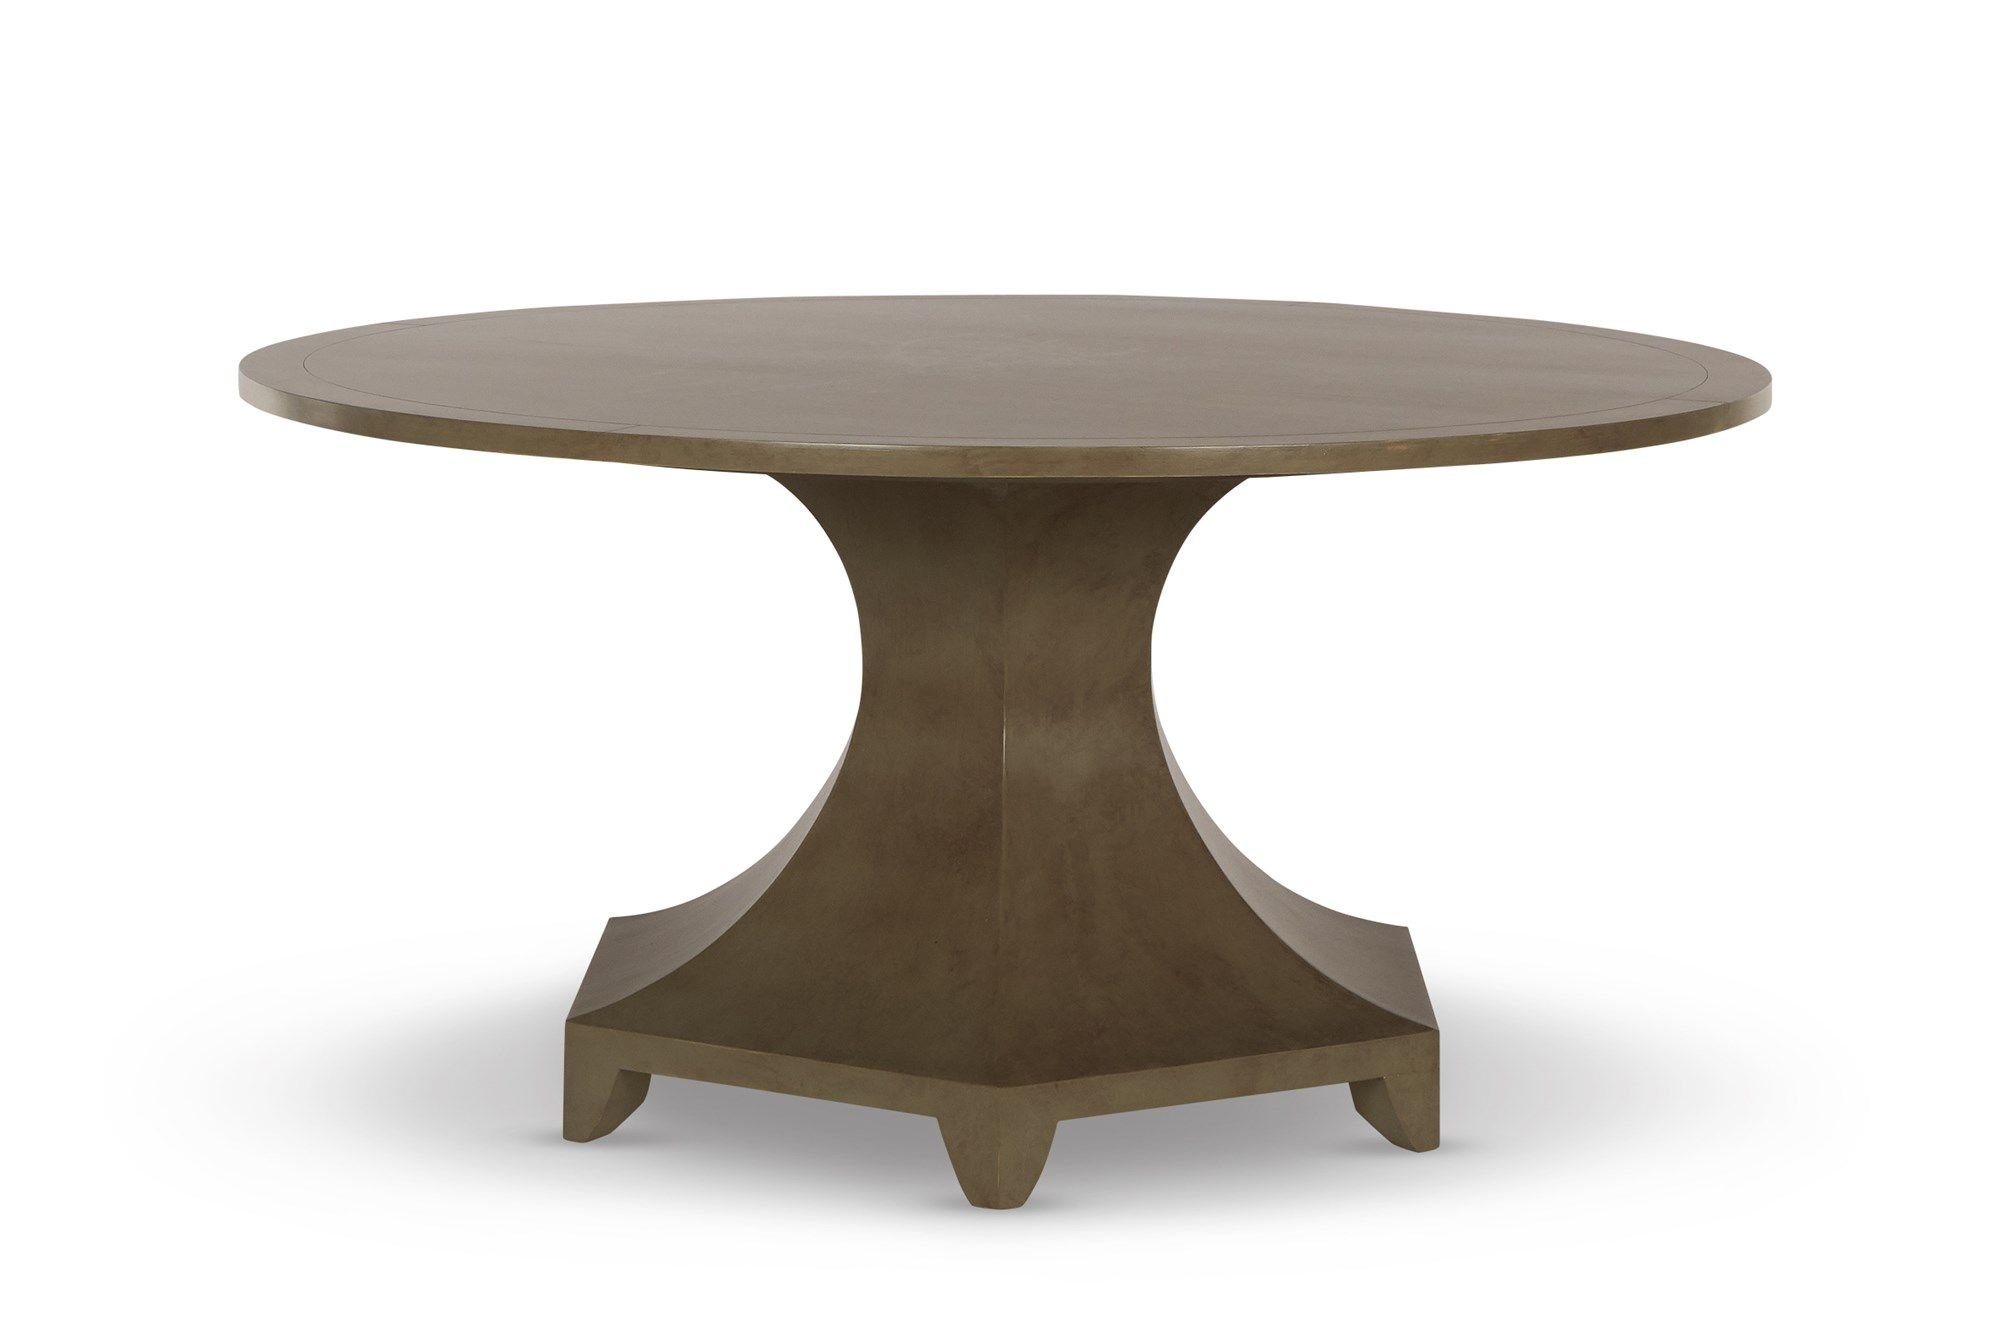 Gala Round Dining Table Tables Room Robb Stucky